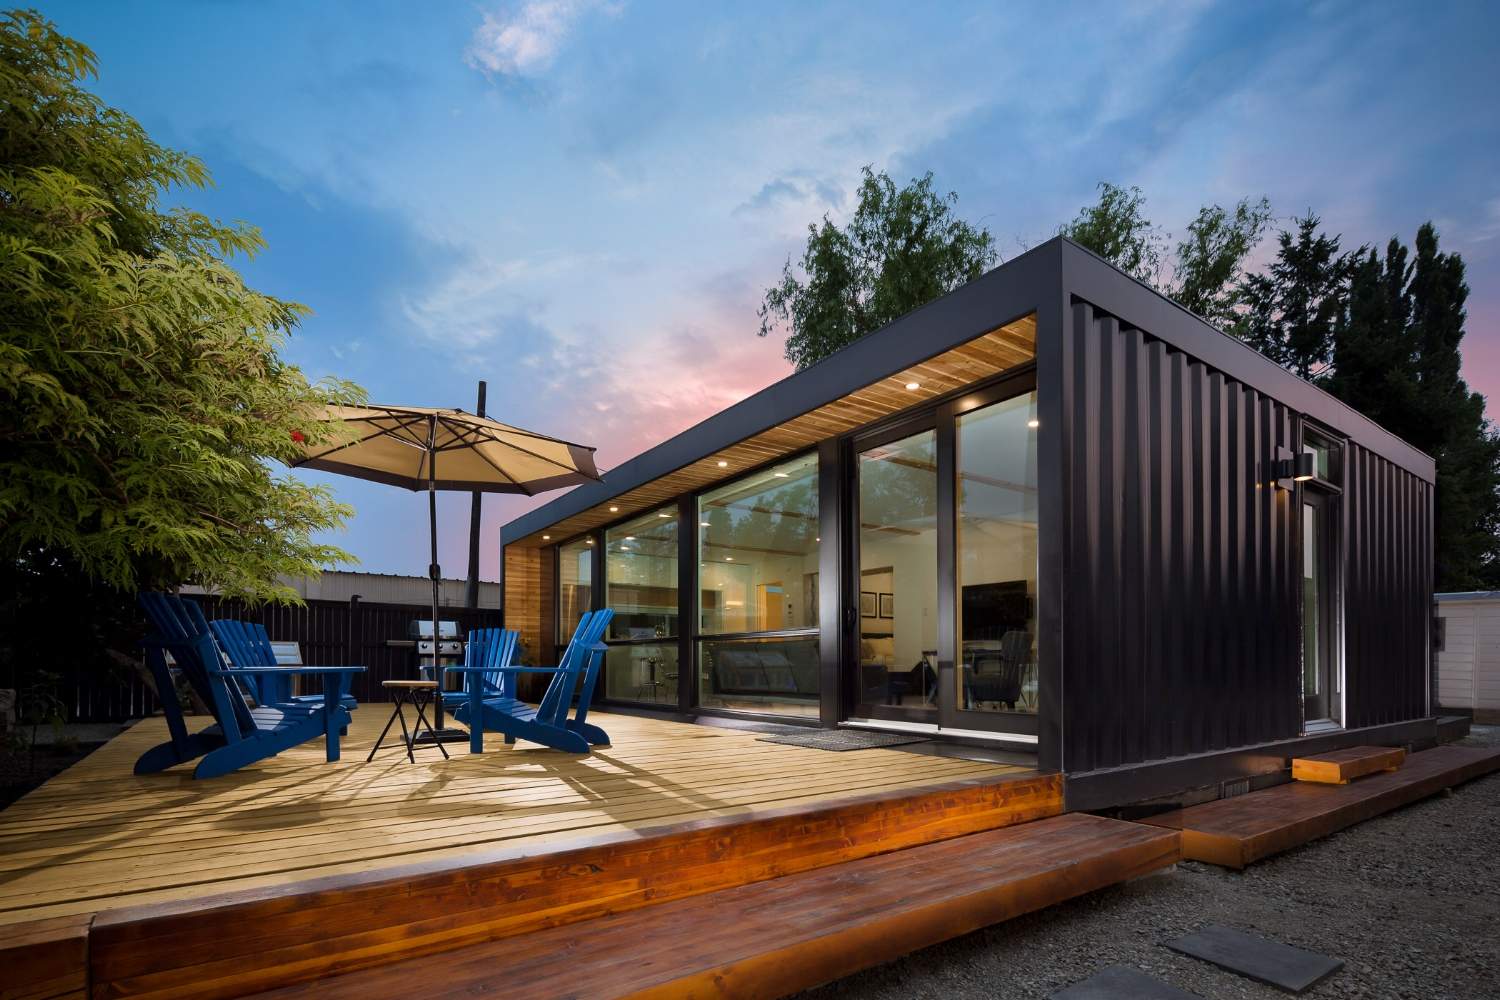 An exterior view of a black shipping container home with a porch, four blue chairs, an umbrella, and a grill.